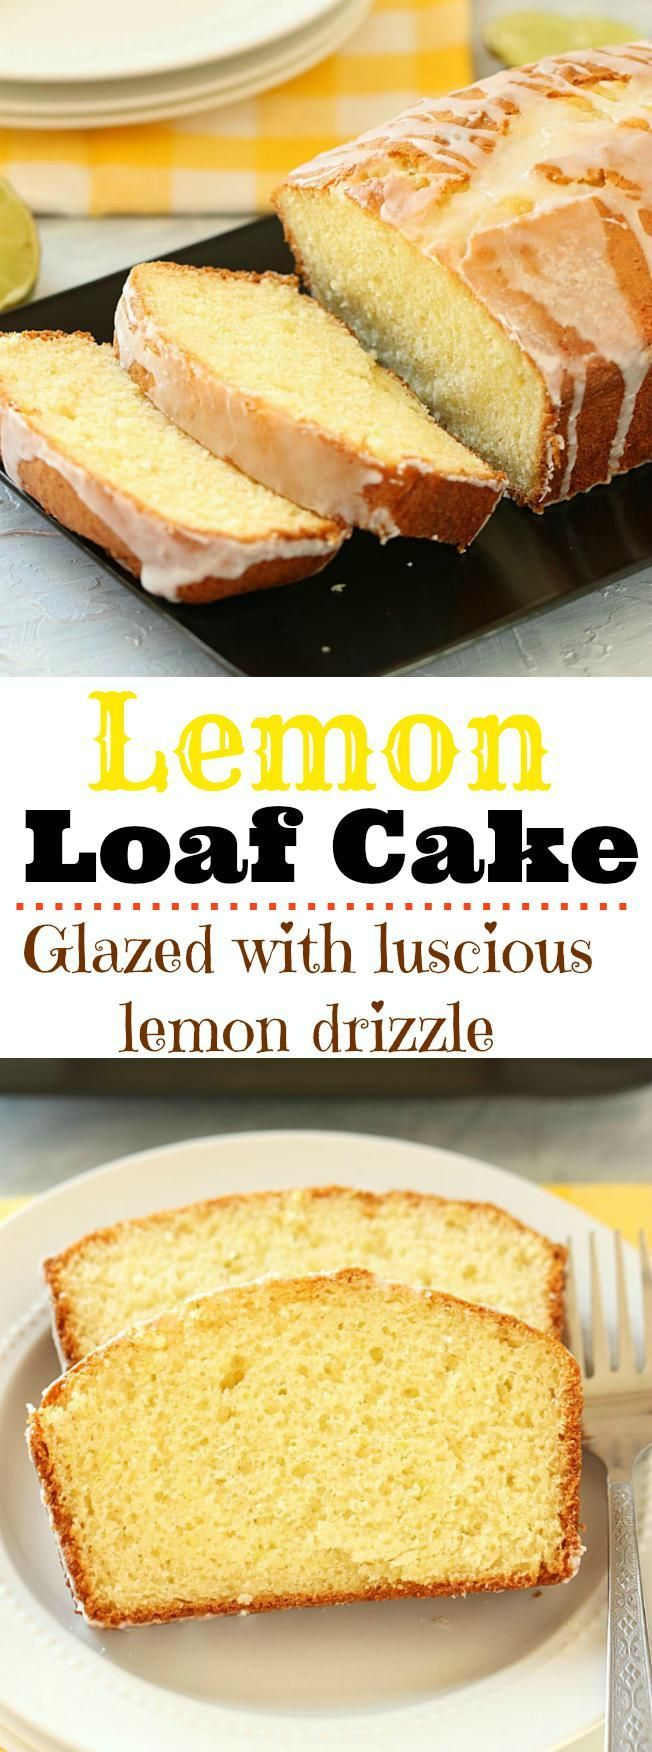 Lemon Loaf Cake - Enjoy a slice of rich and buttery loaf cake that bakes up beautifully and tastes scrumptious. This moist yet dense and flavorful Glazed Lemon Loaf Cake is a perfect way to celebrate spring!